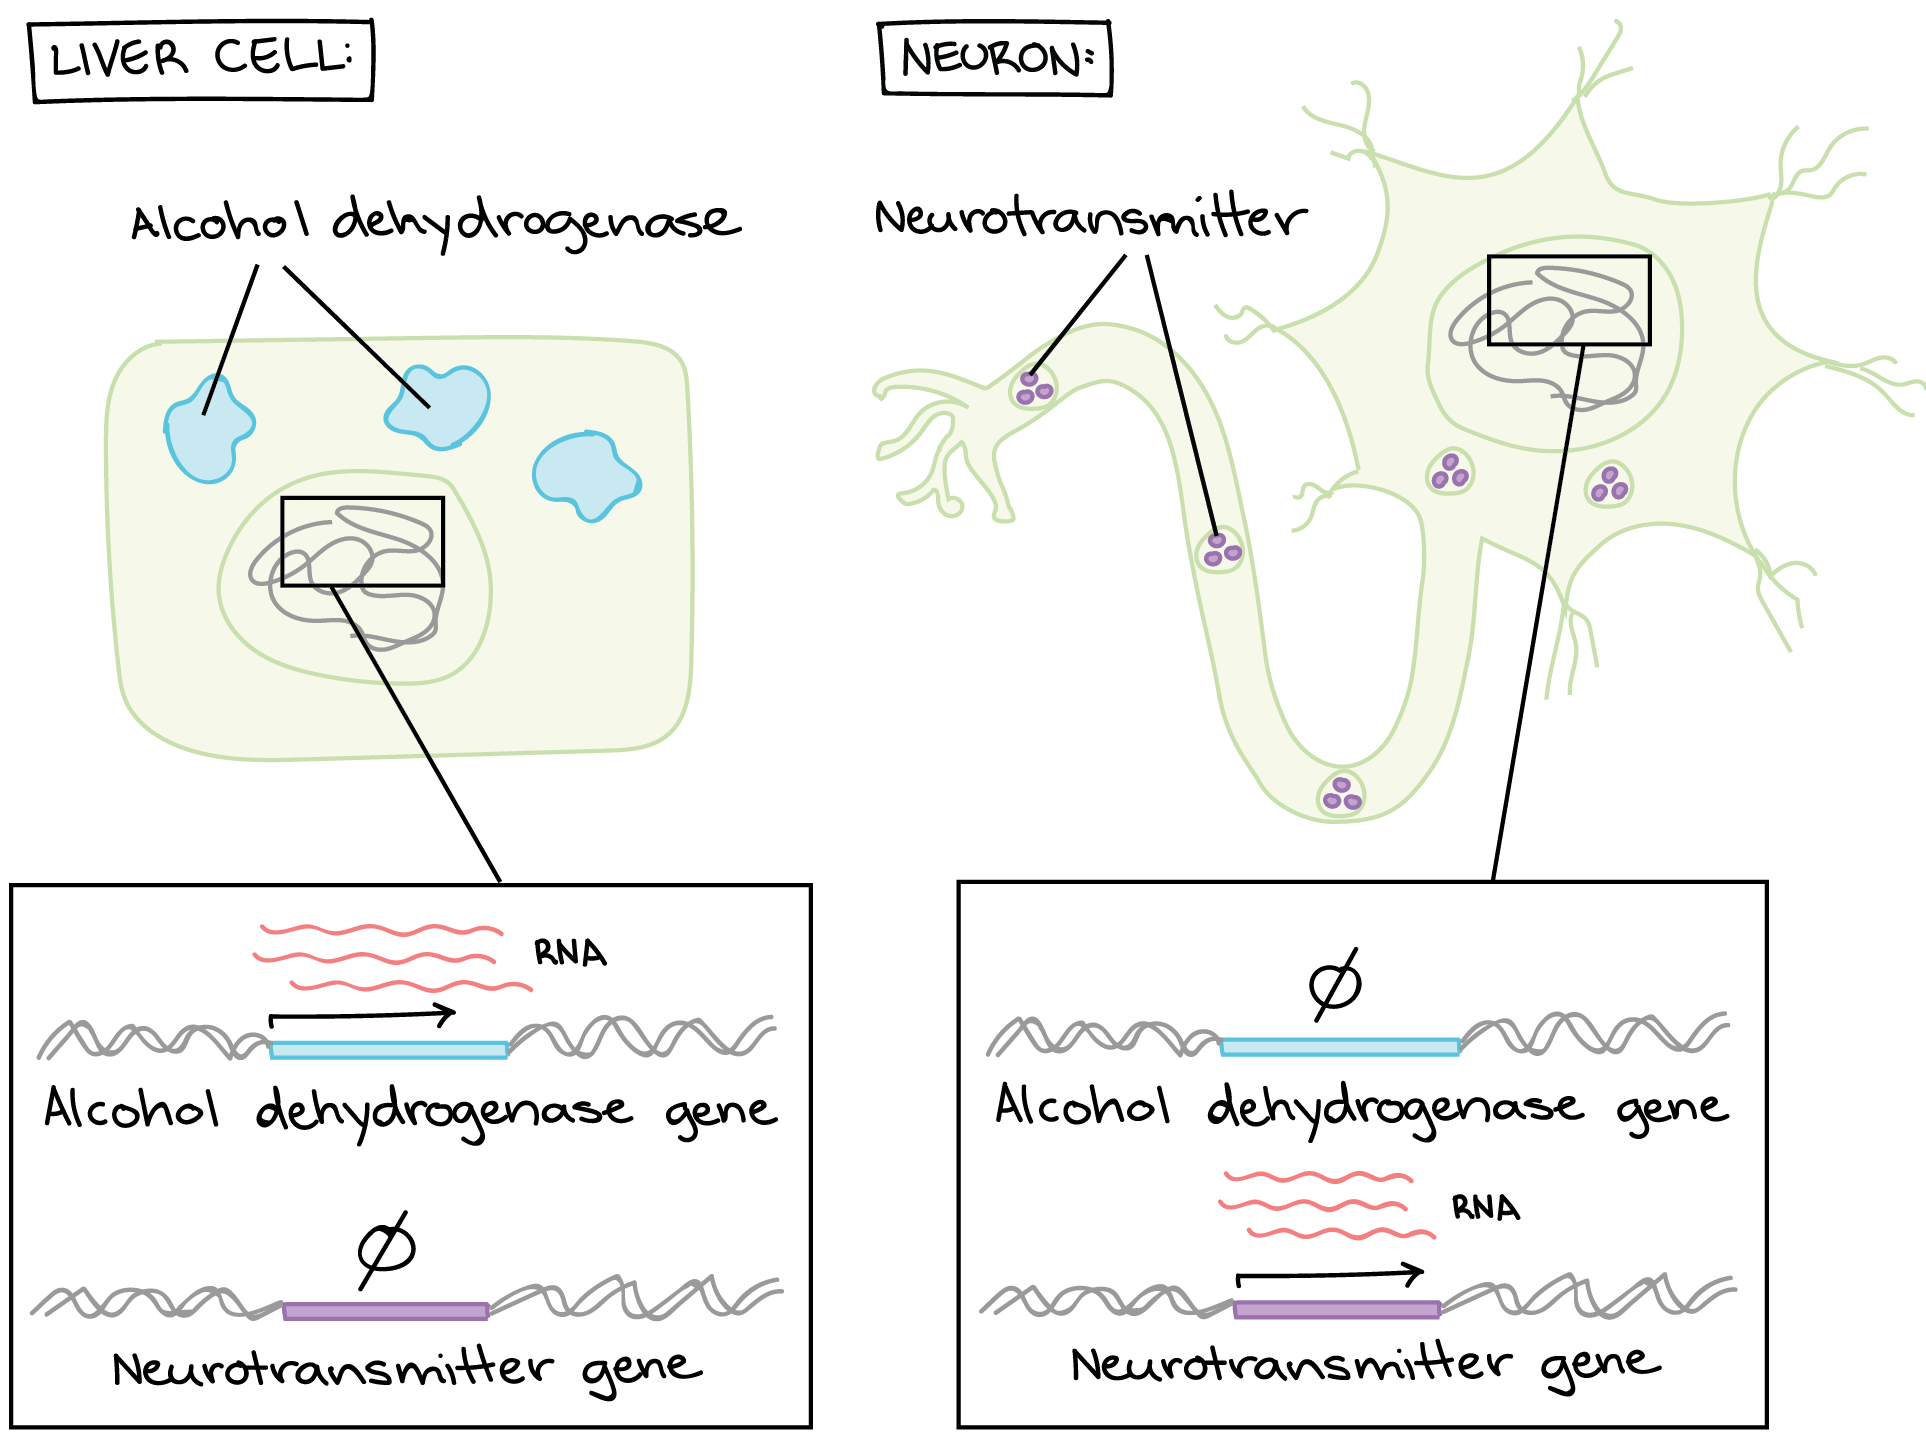 Embryonic Stem Cells Video Khan Academy Child Of Looking At Diagrams The Human Body It Was Weird To See